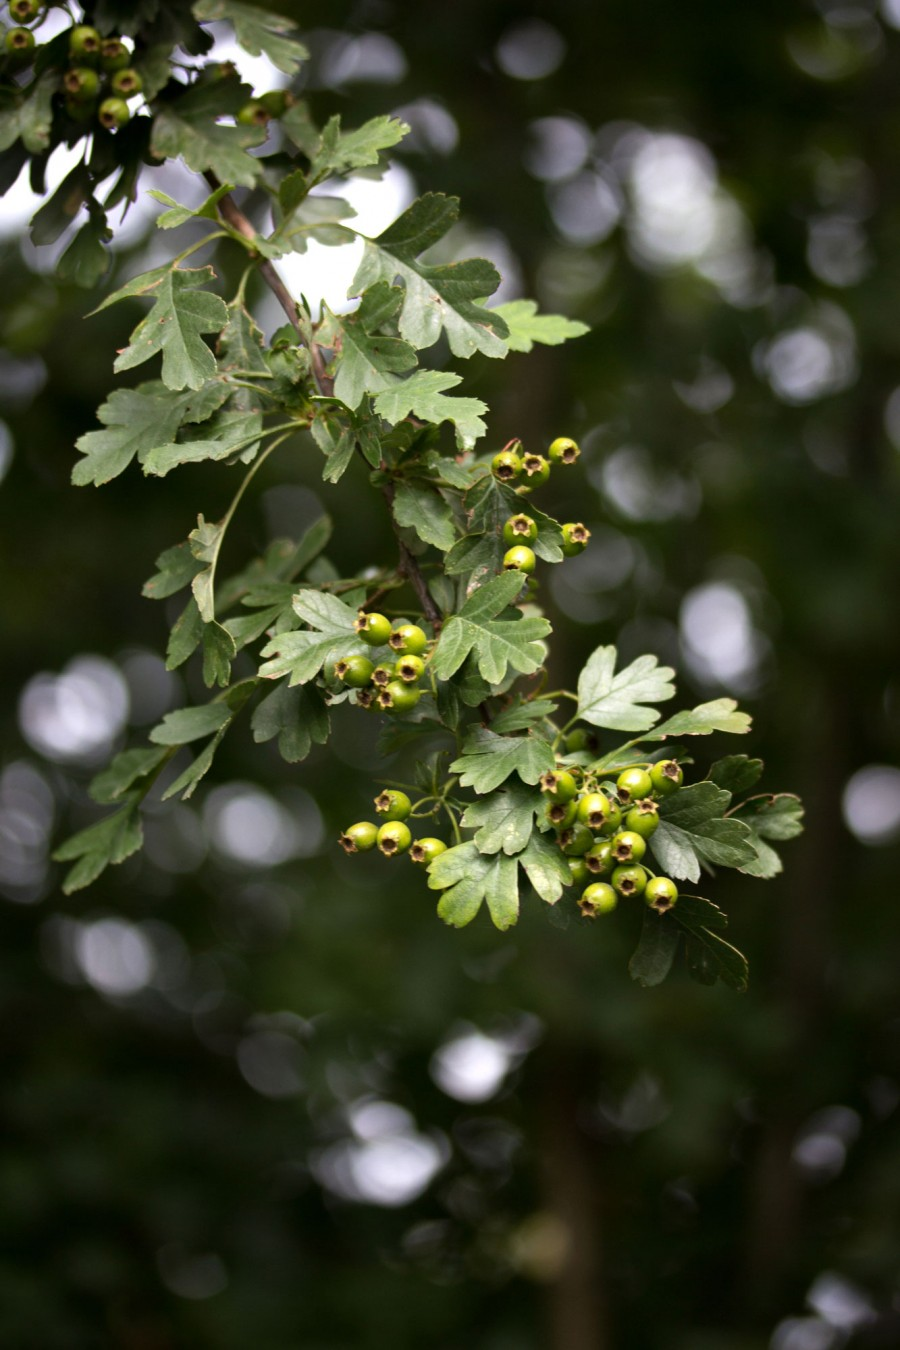 Hawthorn berries are developing around the farm.